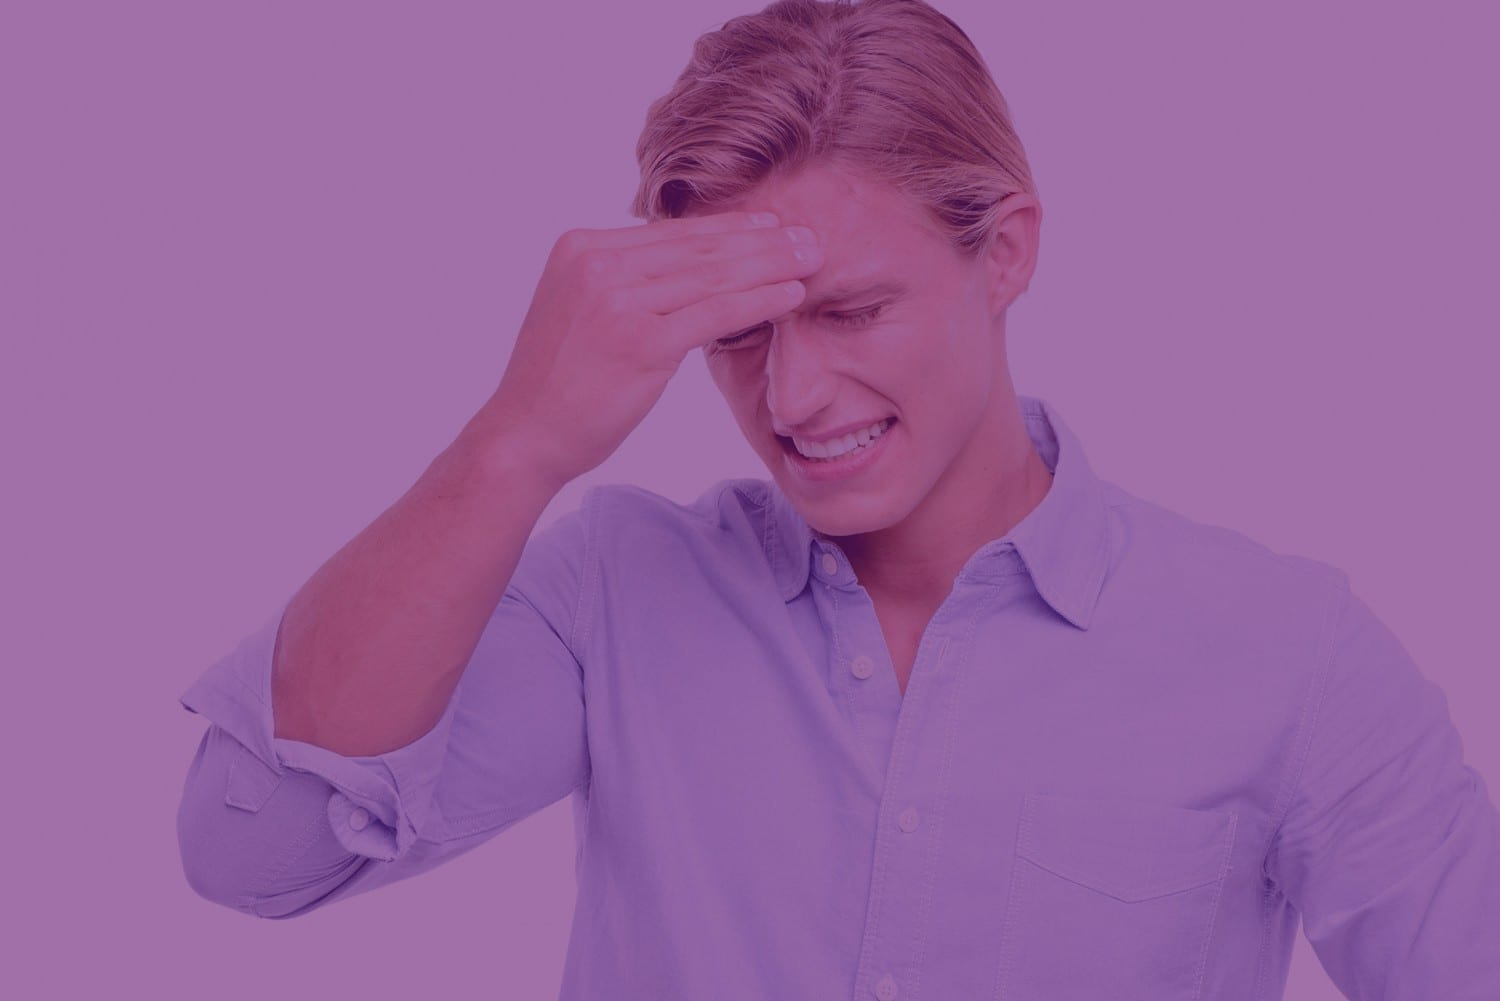 Man holding forehead in pain